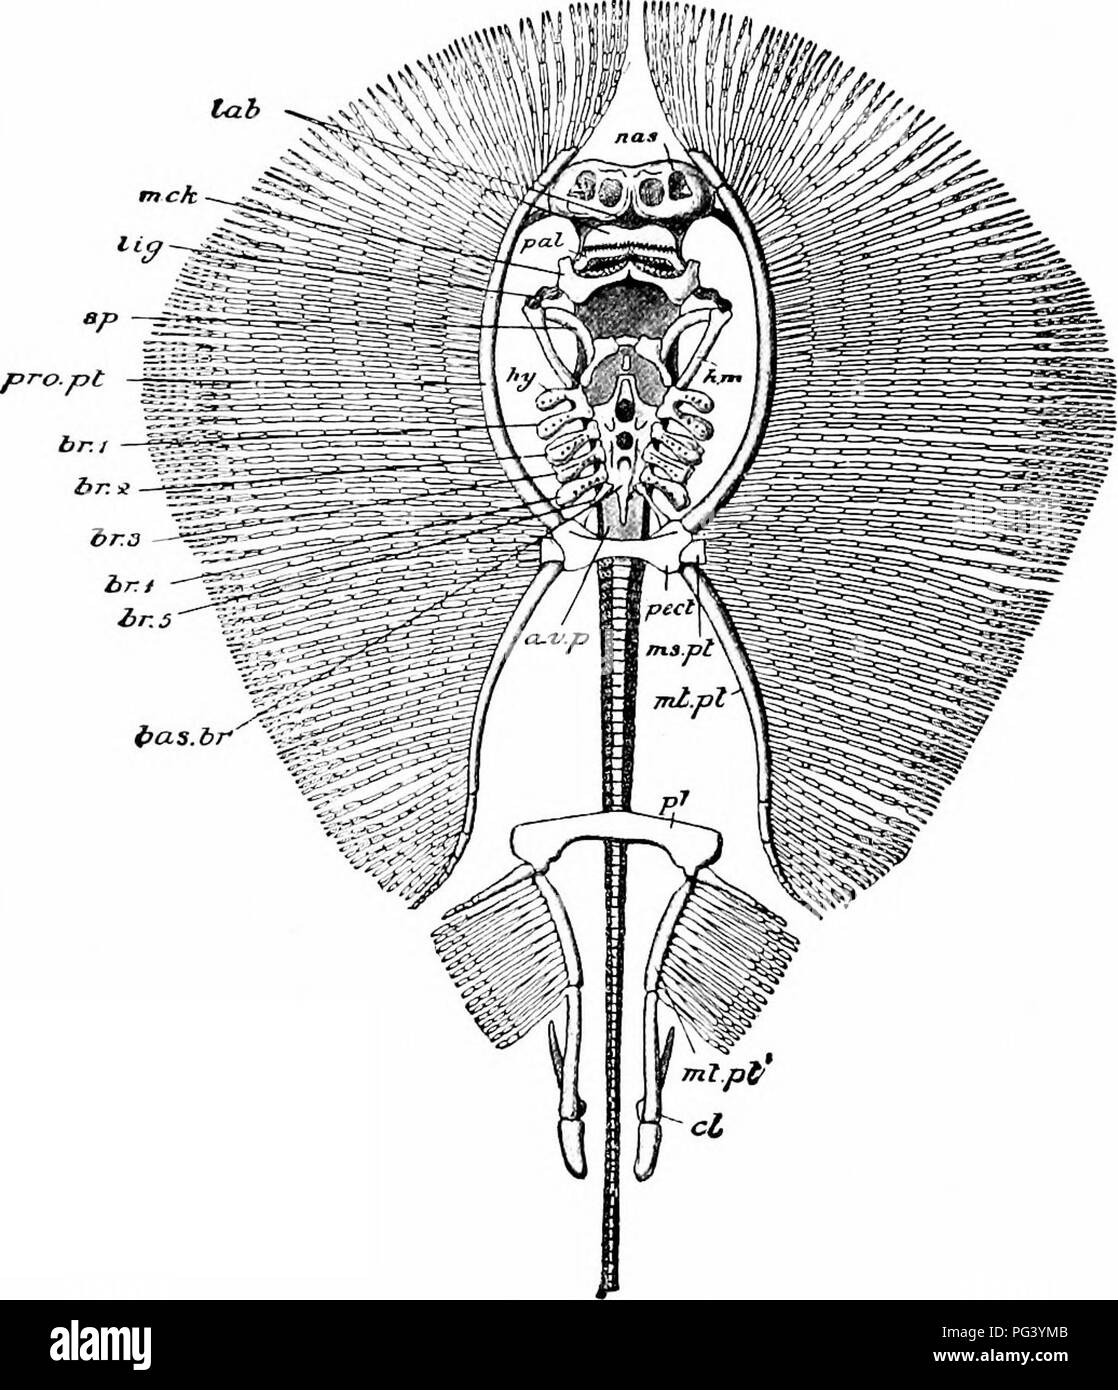 . A manual of zoology. 39° MANUAL OF ZOOLOGY may be nearly completely cartilaginous {Hcxanchus and Heptanchus), but usually the centra are strengthened by. Fig. 233. — Skeleton of sting-ray (UrolophUS testaceus), ventral view, a.v.p, anterior vertebral plate; bas. br, basi-branchial plate; br. i-br. j, branchial arches. The branchial rays are represented as having been removed, the round dots indicate their articulations with the arches cl, skeleton of clasper; h, m, hyomandibular; Jty. hyoid arch; lab, labial cartilage; lig, ligament connecting the hyomandibular with the palato-quadrate and M - Stock Image